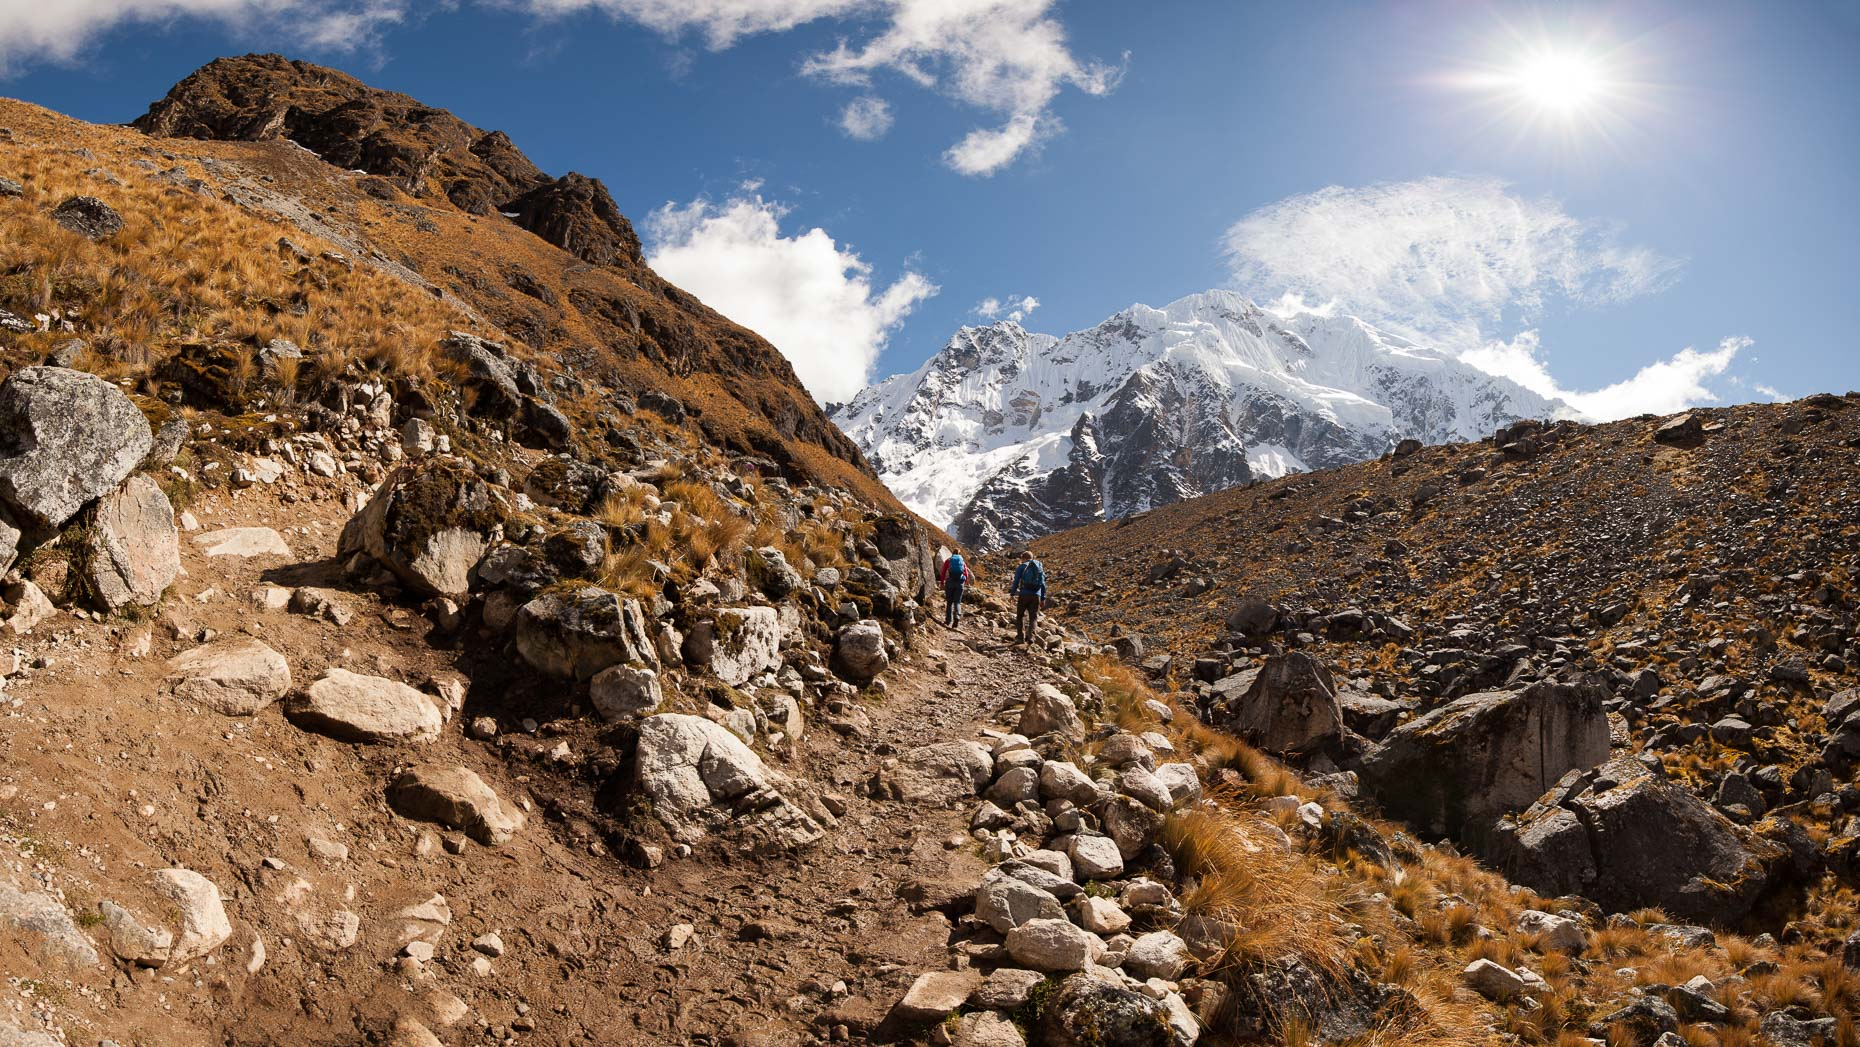 Salkantay Trek to the Pass, Peru